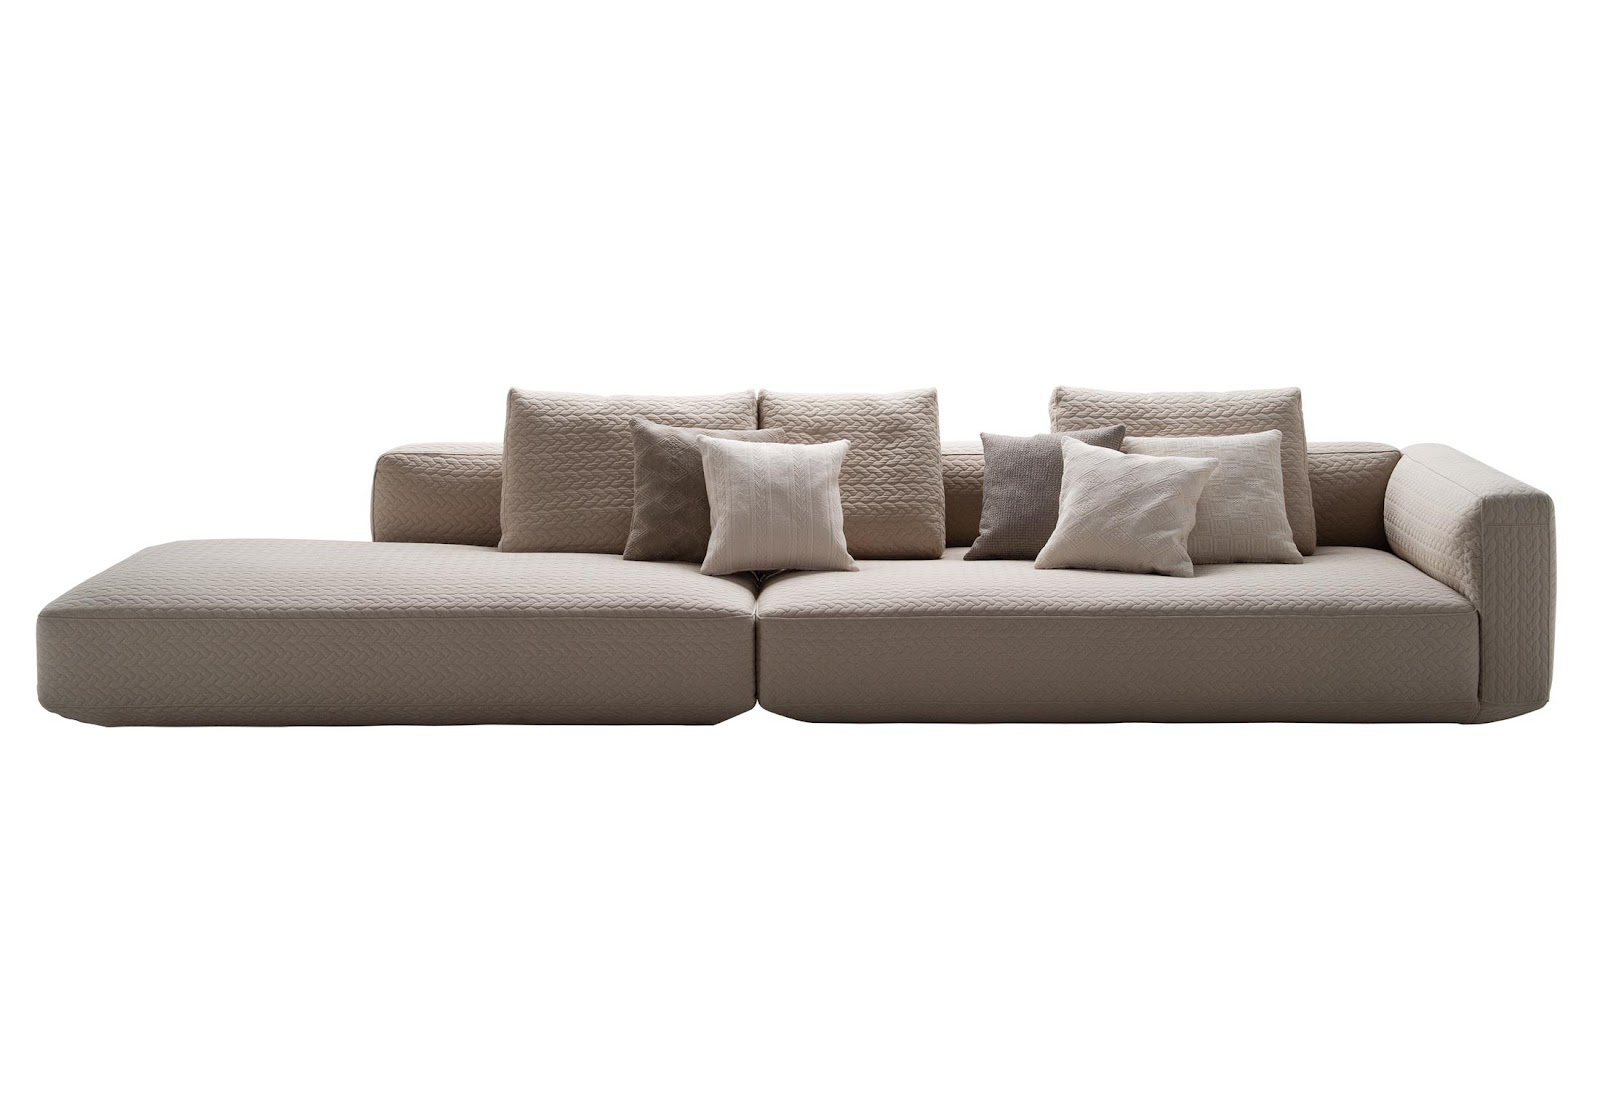 pottery barn goose down sofa kincaid sectional sofas altopiano by zanotta designer furniture fitted